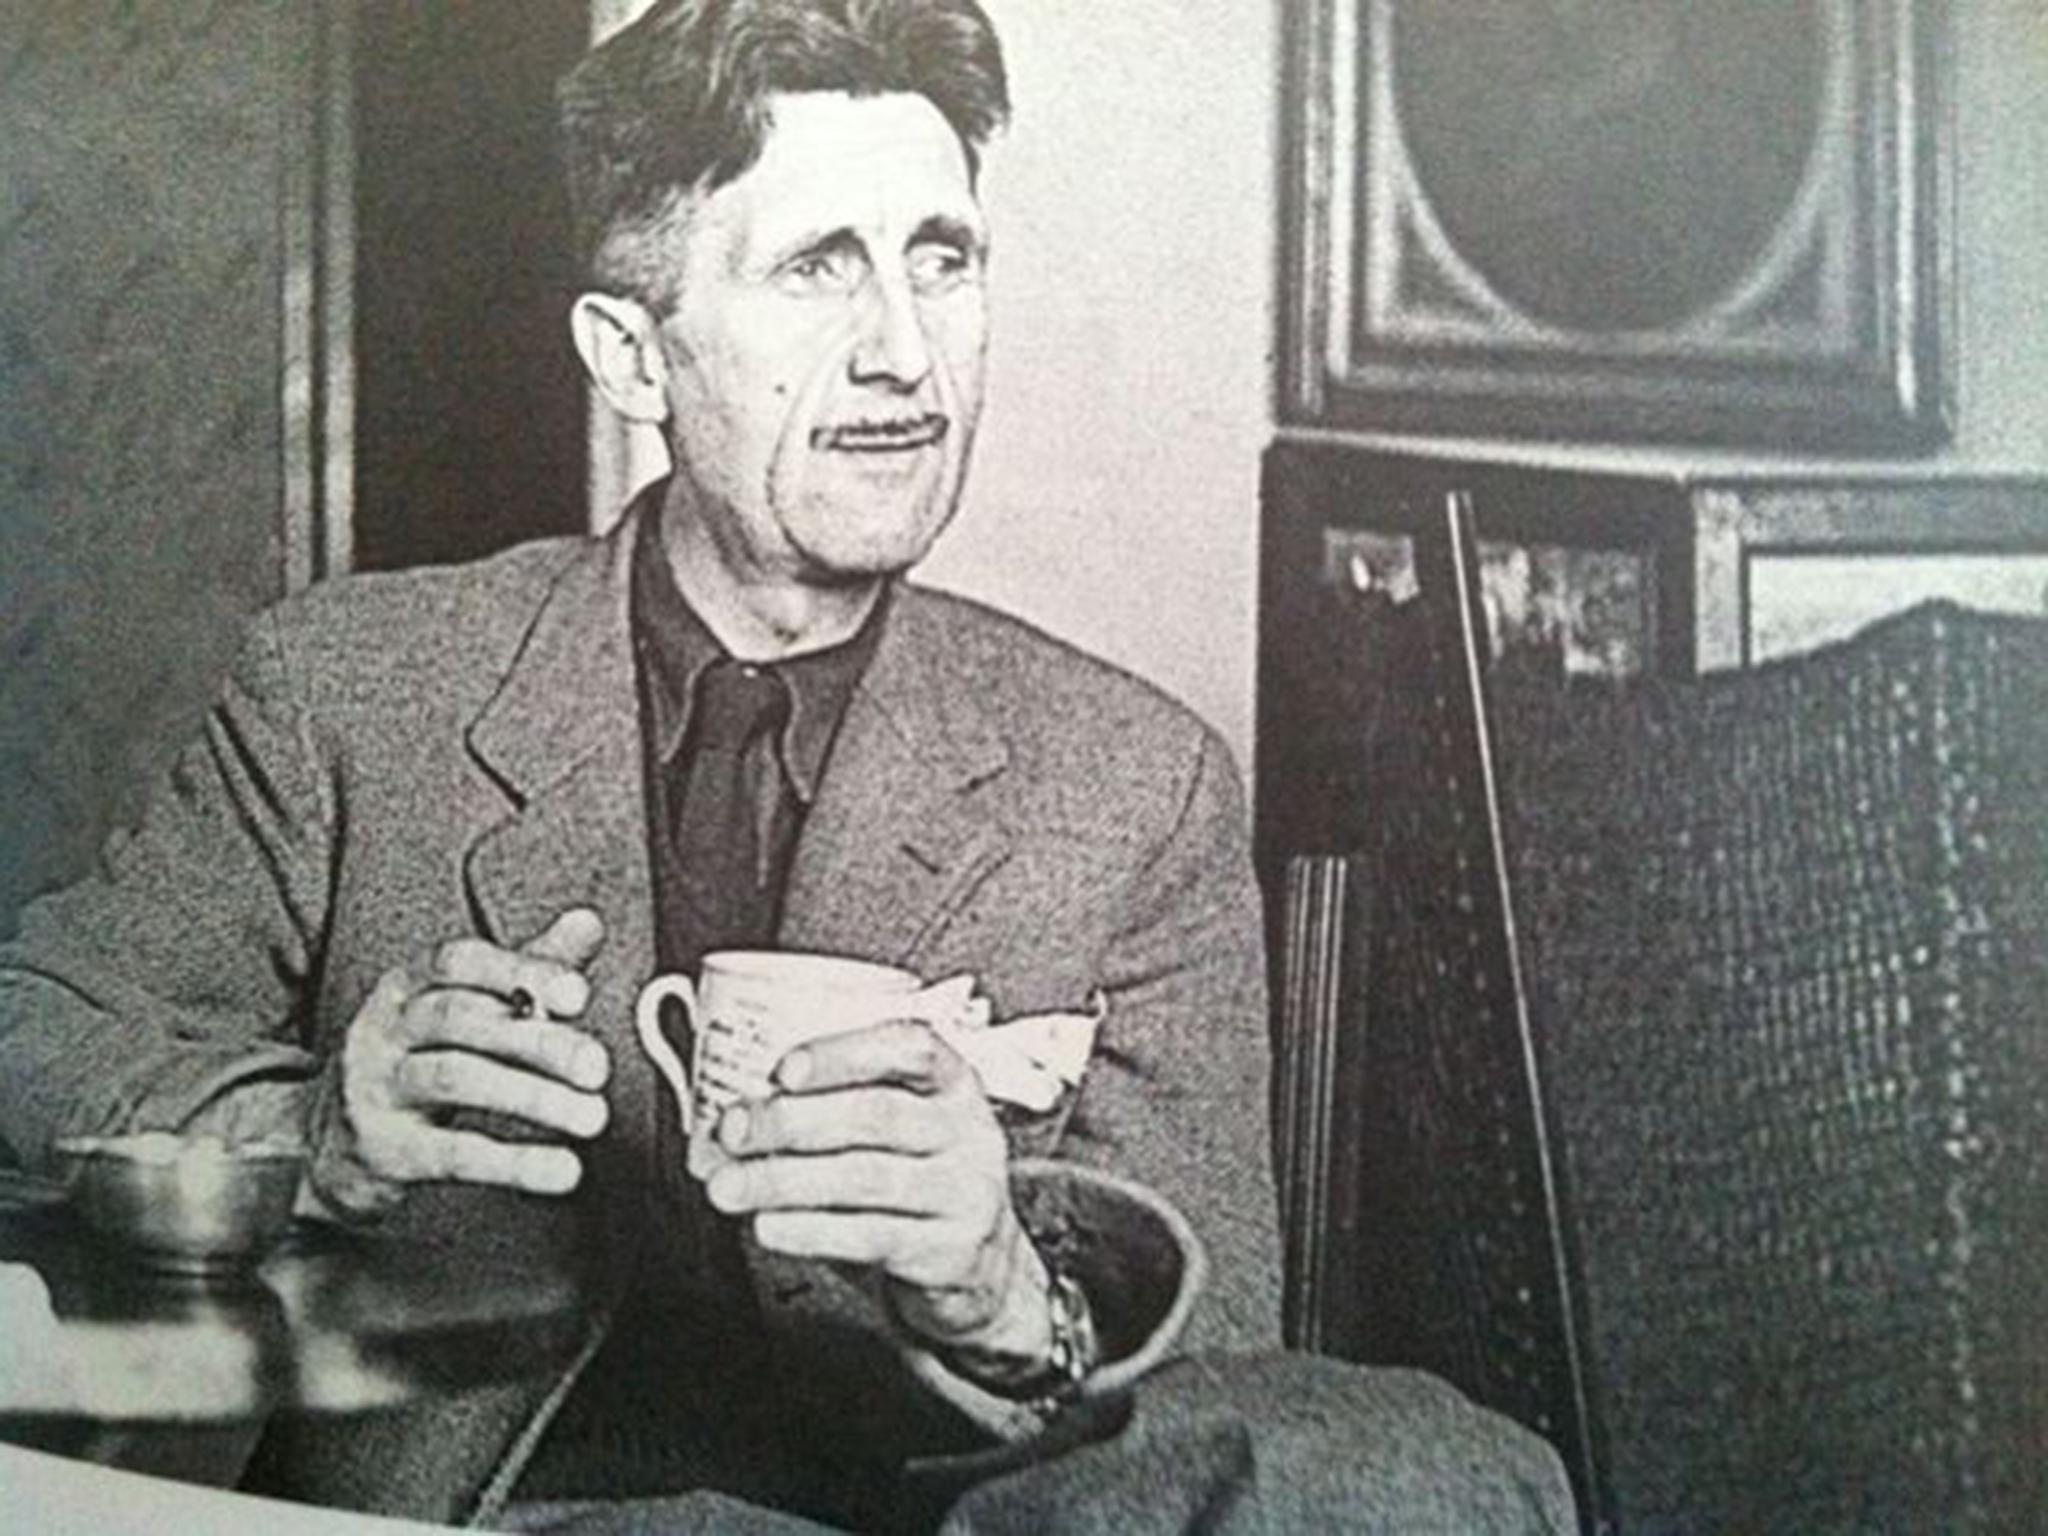 nature studies in praise of george orwell unexpected lover of nature studies in praise of george orwell unexpected lover of the common toad the independent